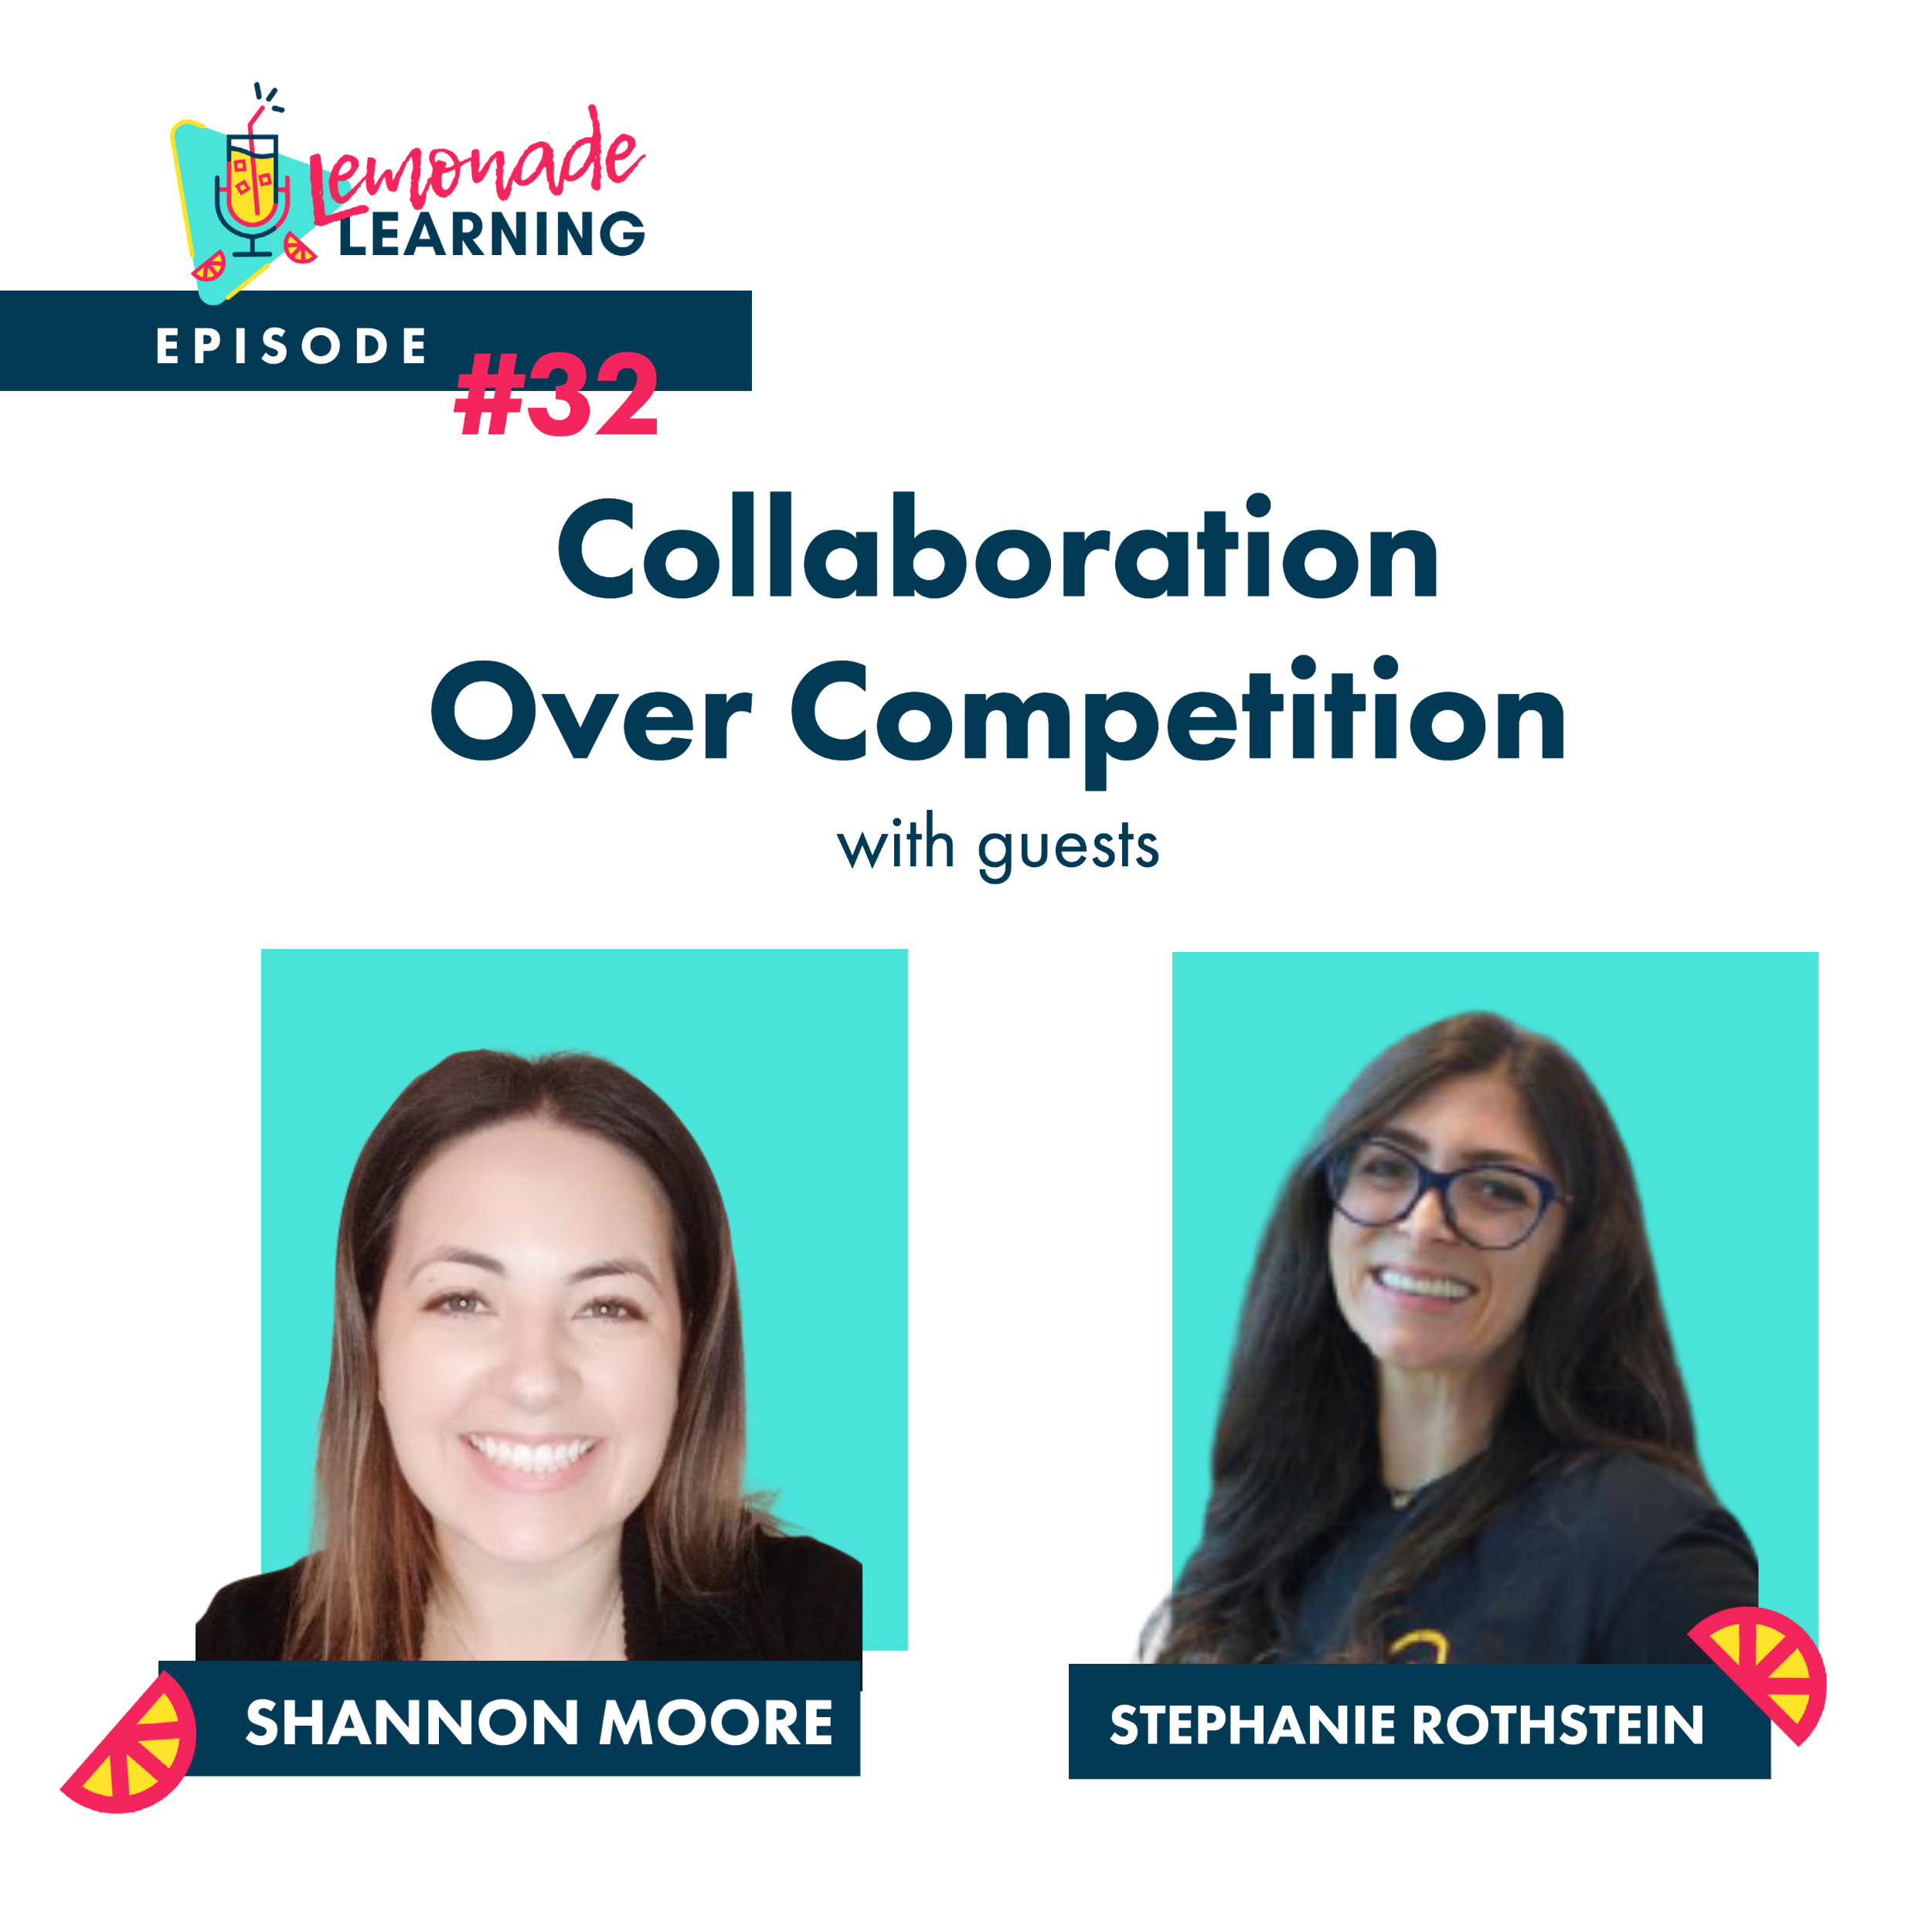 Shannon Moore and Stephanie Rothstein in Episode 32 Competition Over Collaboration